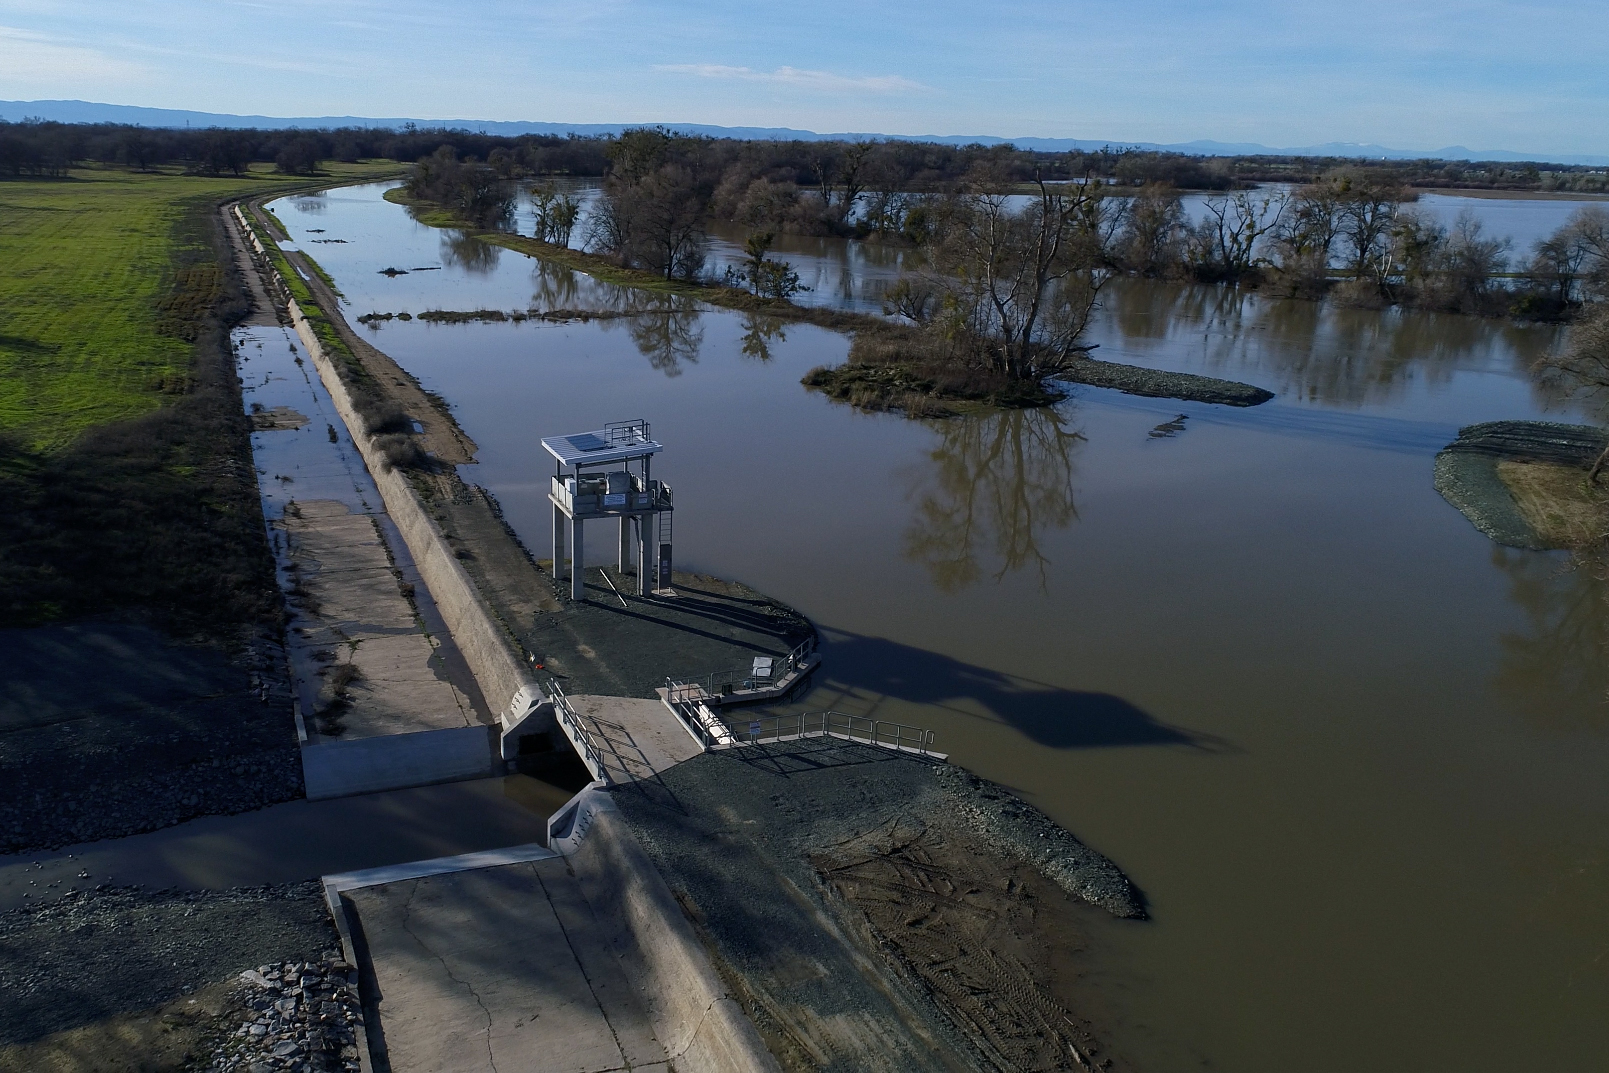 View of Fremont Weir in the Yolo Bypass.